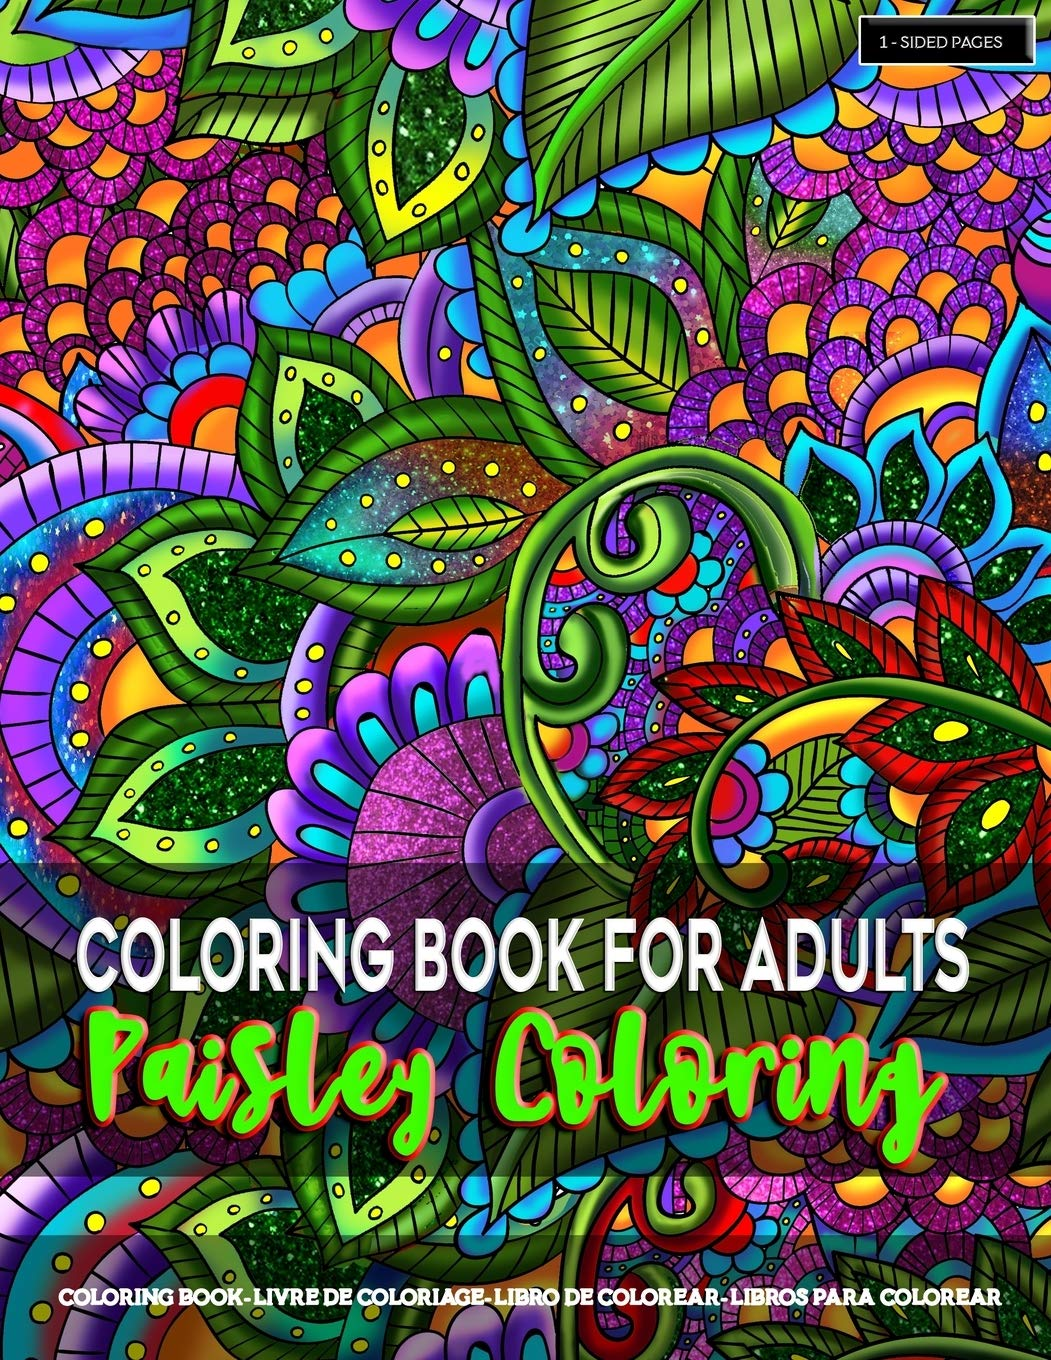 Coloring Book For Adults Paisley Coloring Paisley Coloring Pages For Grown Ups Featuring Amazing Paisley Patterns Flowers Designs For Stress Relief Relaxation Mindfulness And Boost Creativity Amazon Ca Artfulness Mandala Books